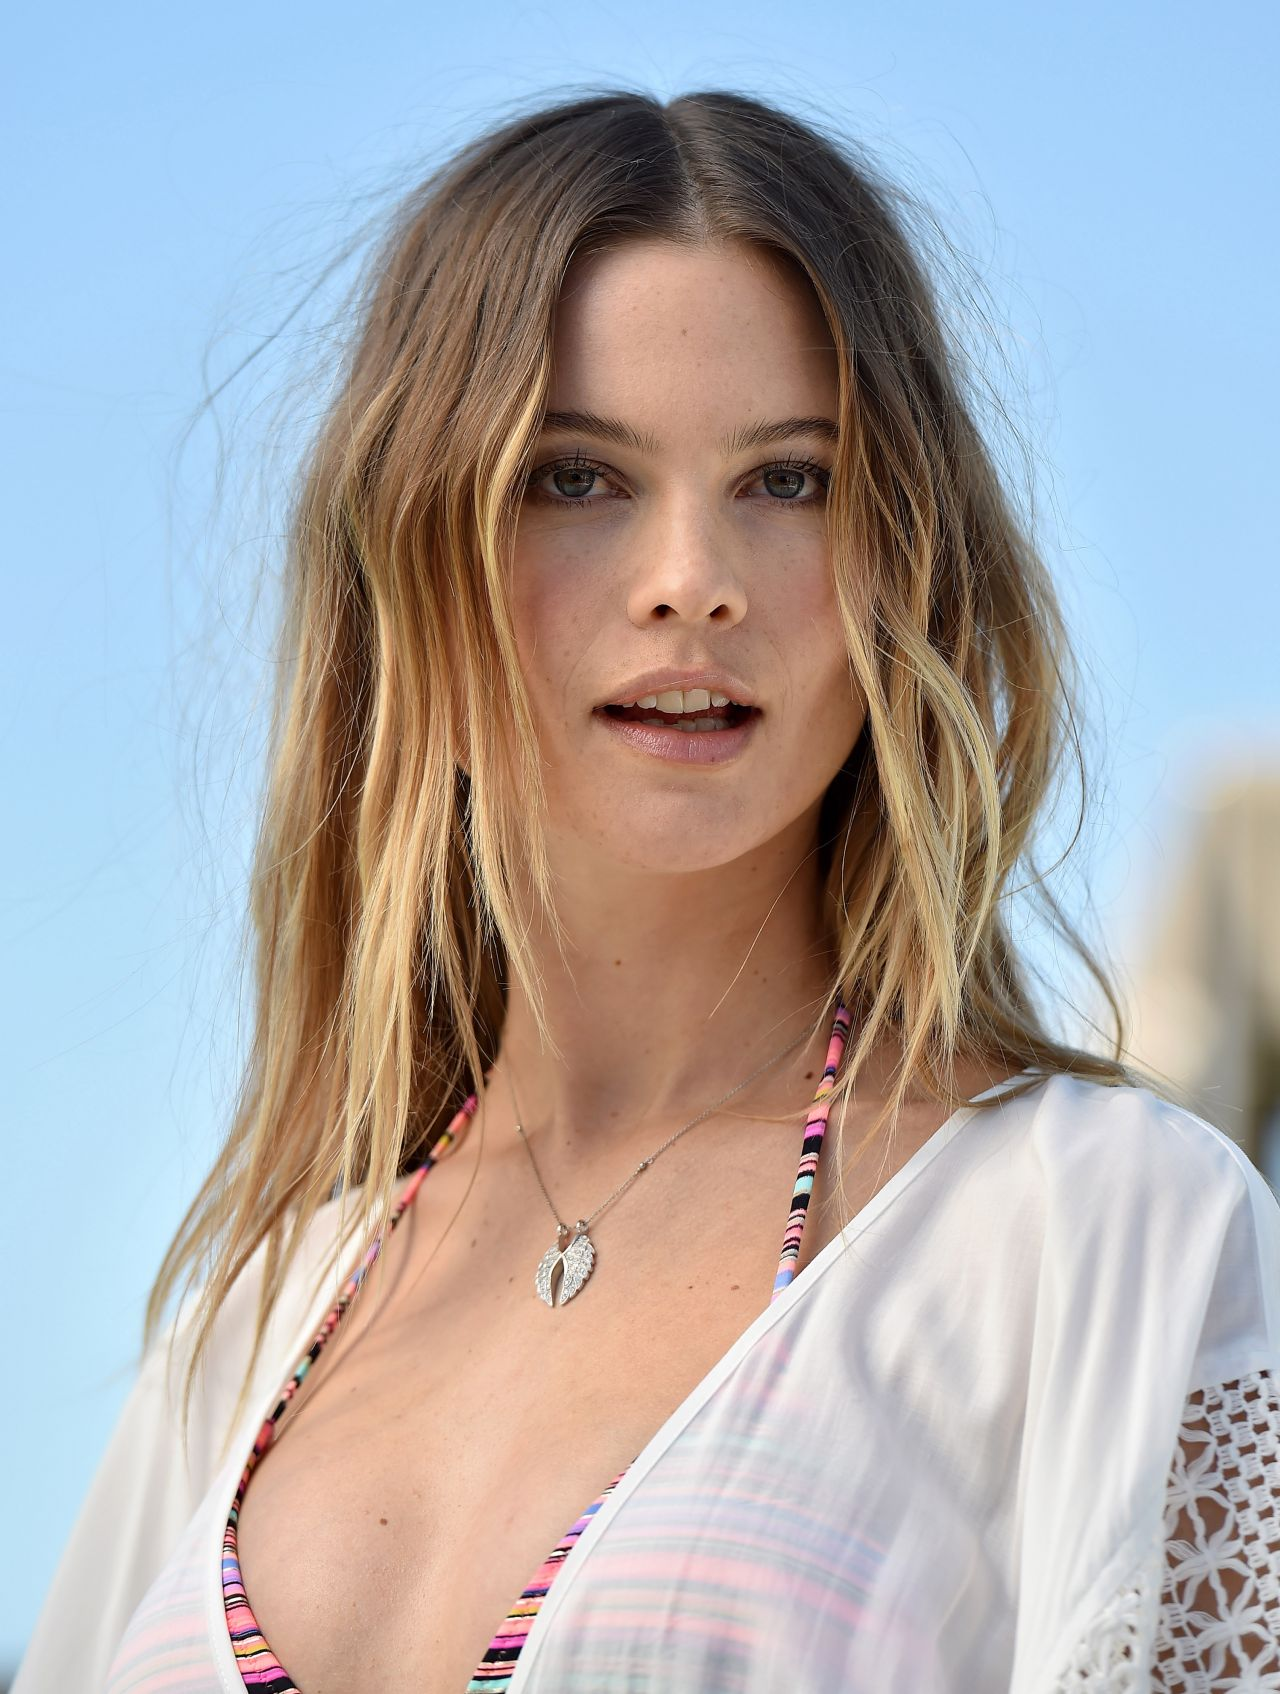 behati prinsloo launches victoria u2019s secret swim collection 3  8  2016